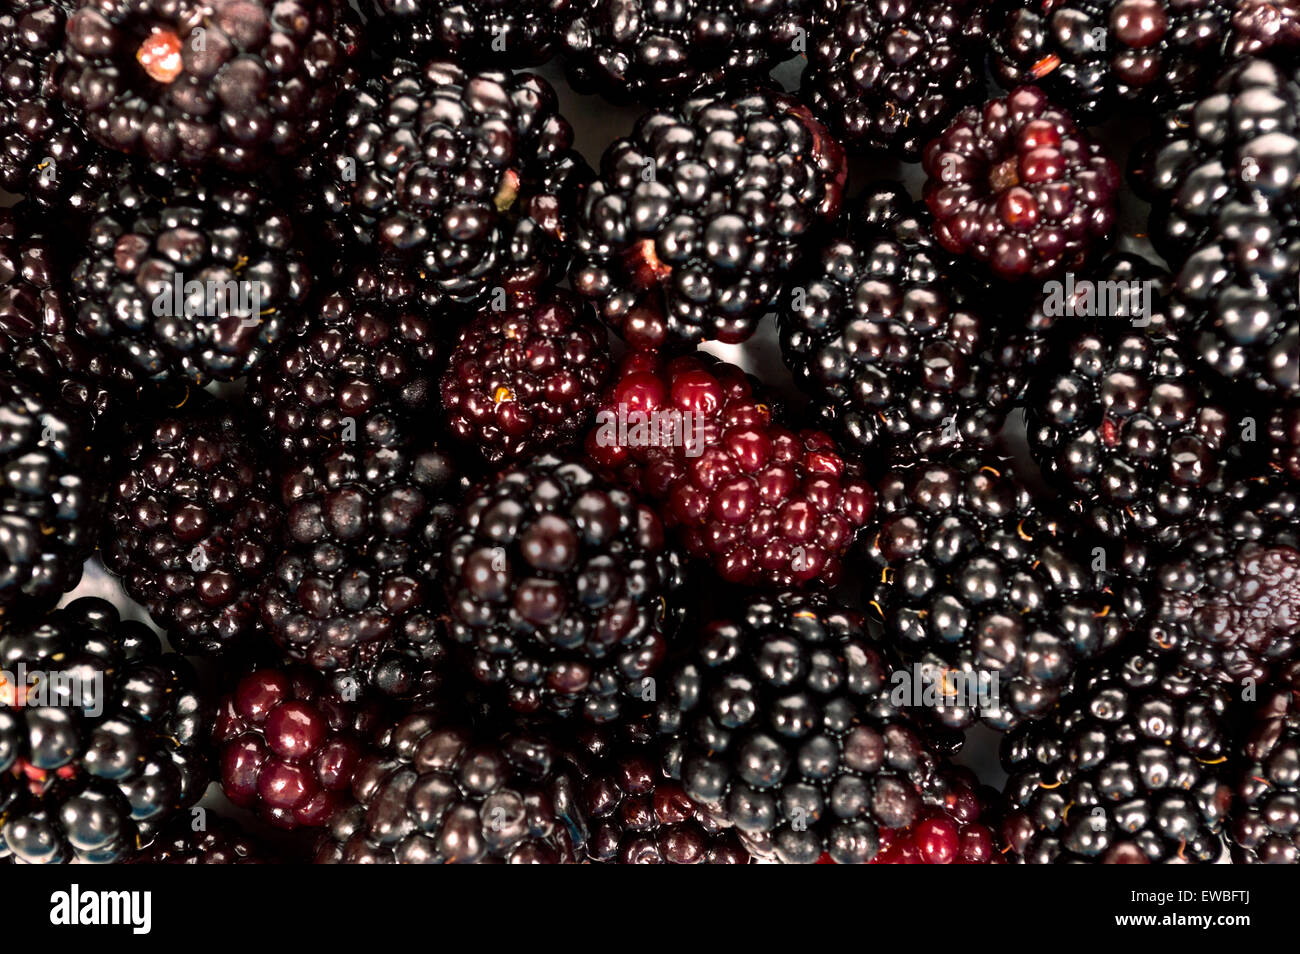 Abundance of fresh picked blackberries close up as background - Stock Image